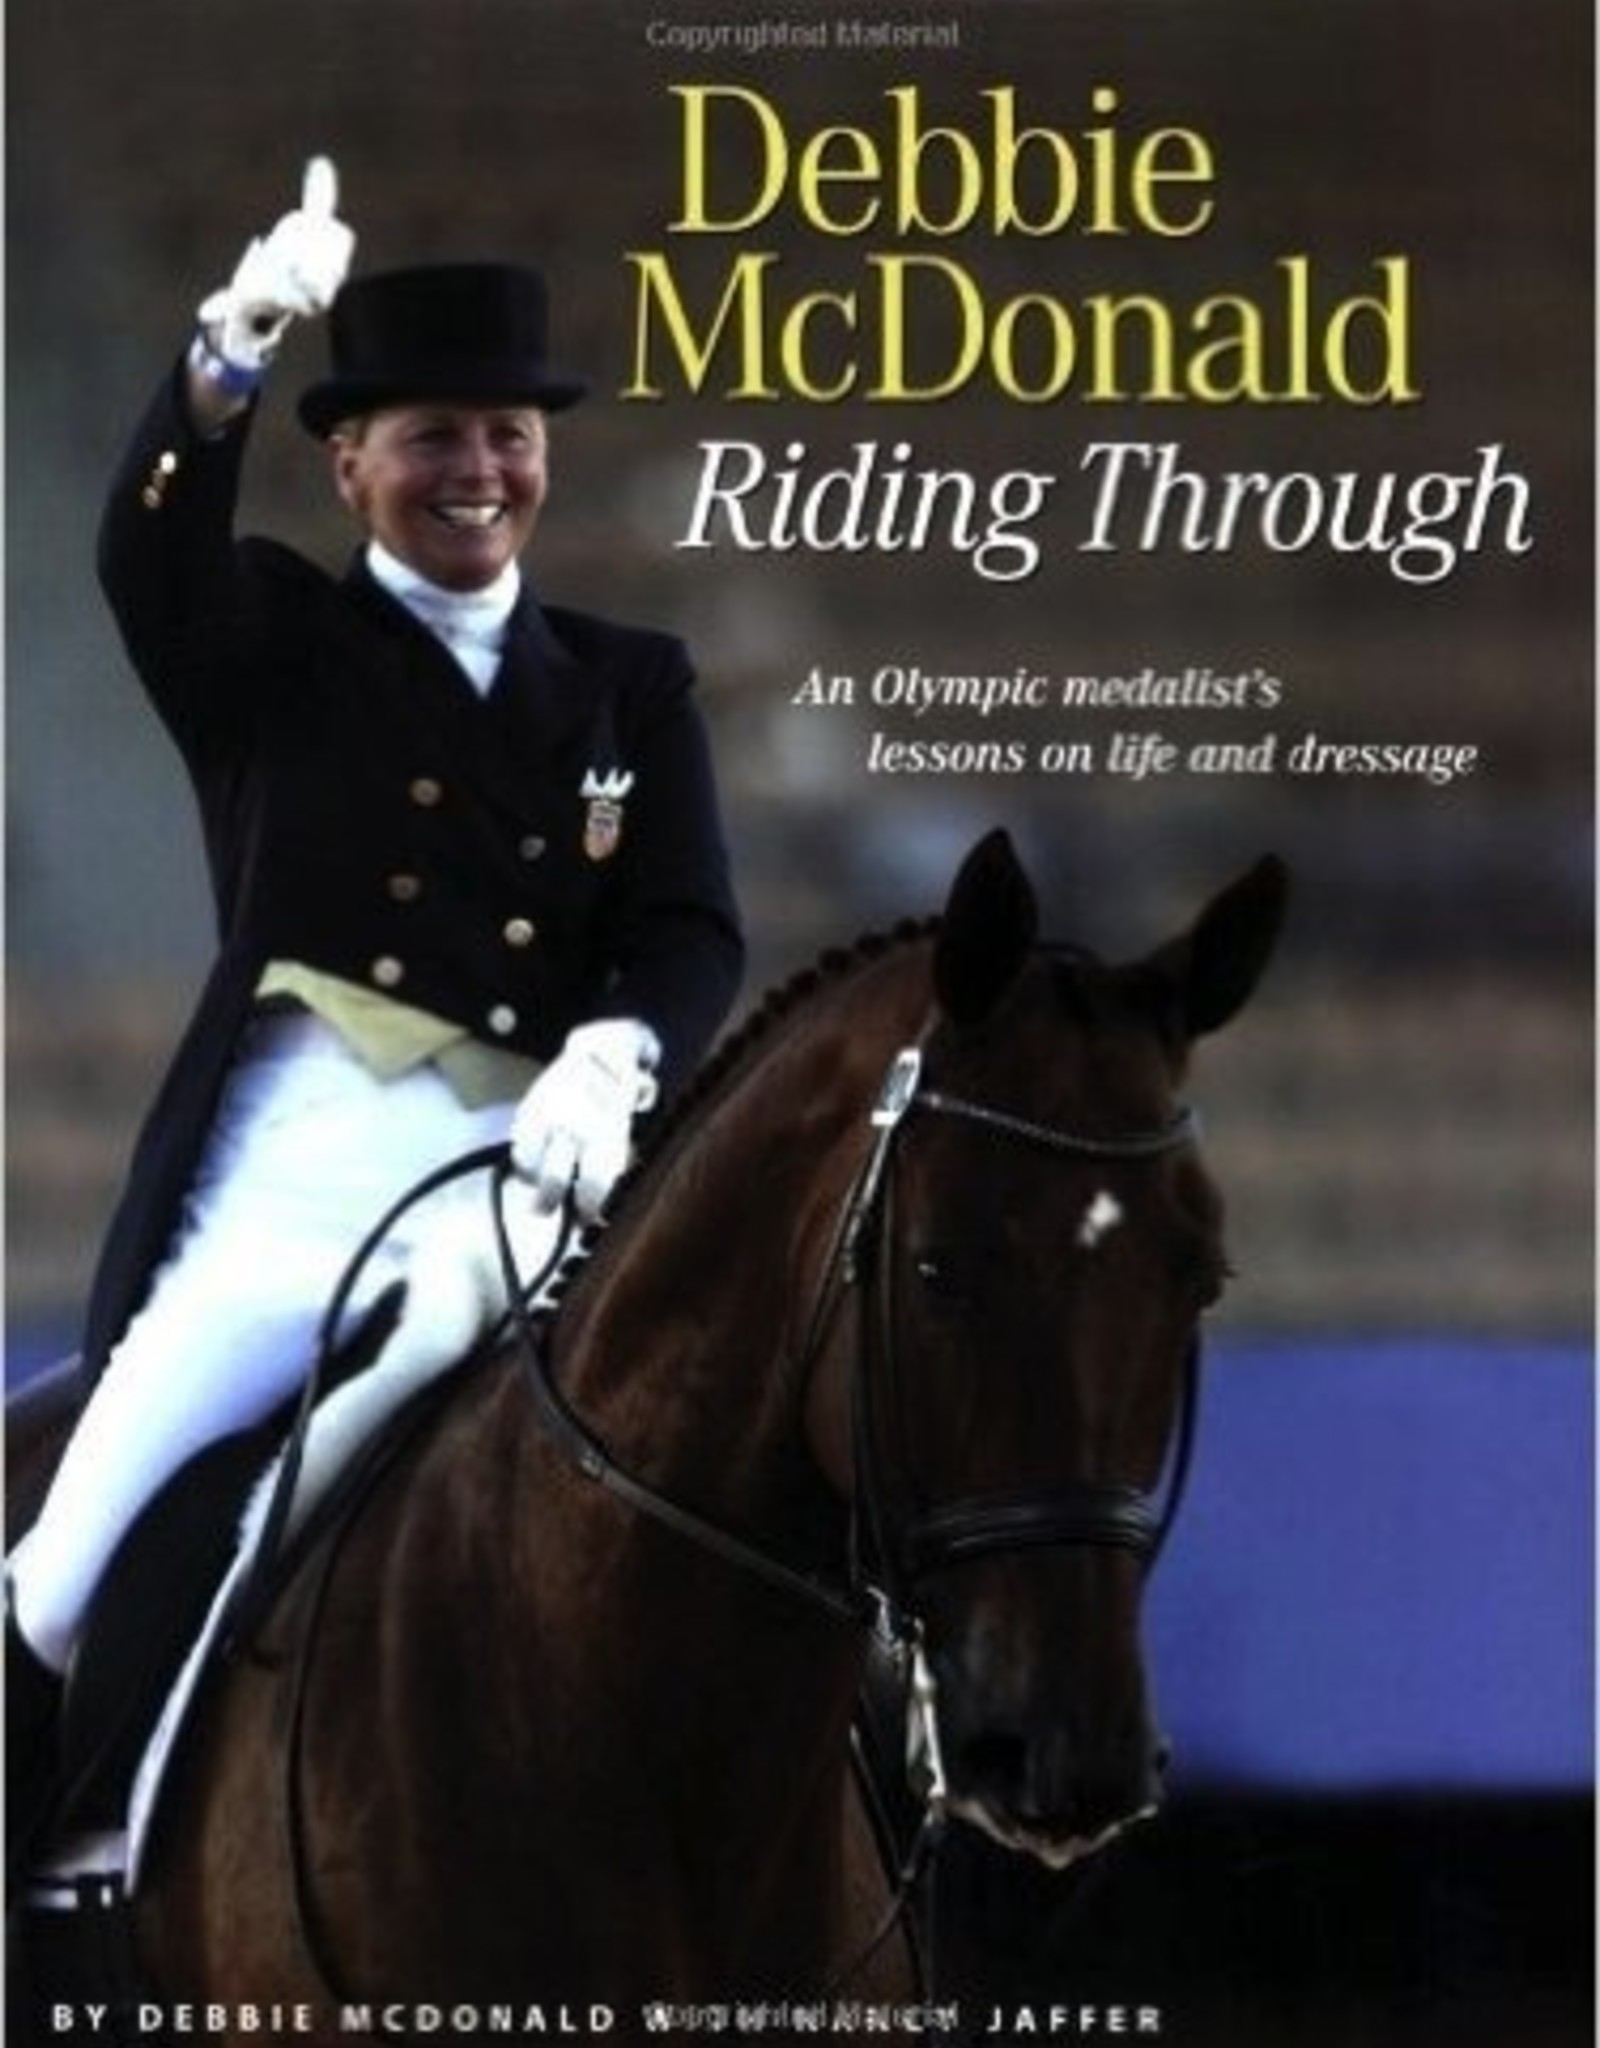 Debbie McDonald Riding Through: An Olympic Medalist's Lessons on Life and Dressage